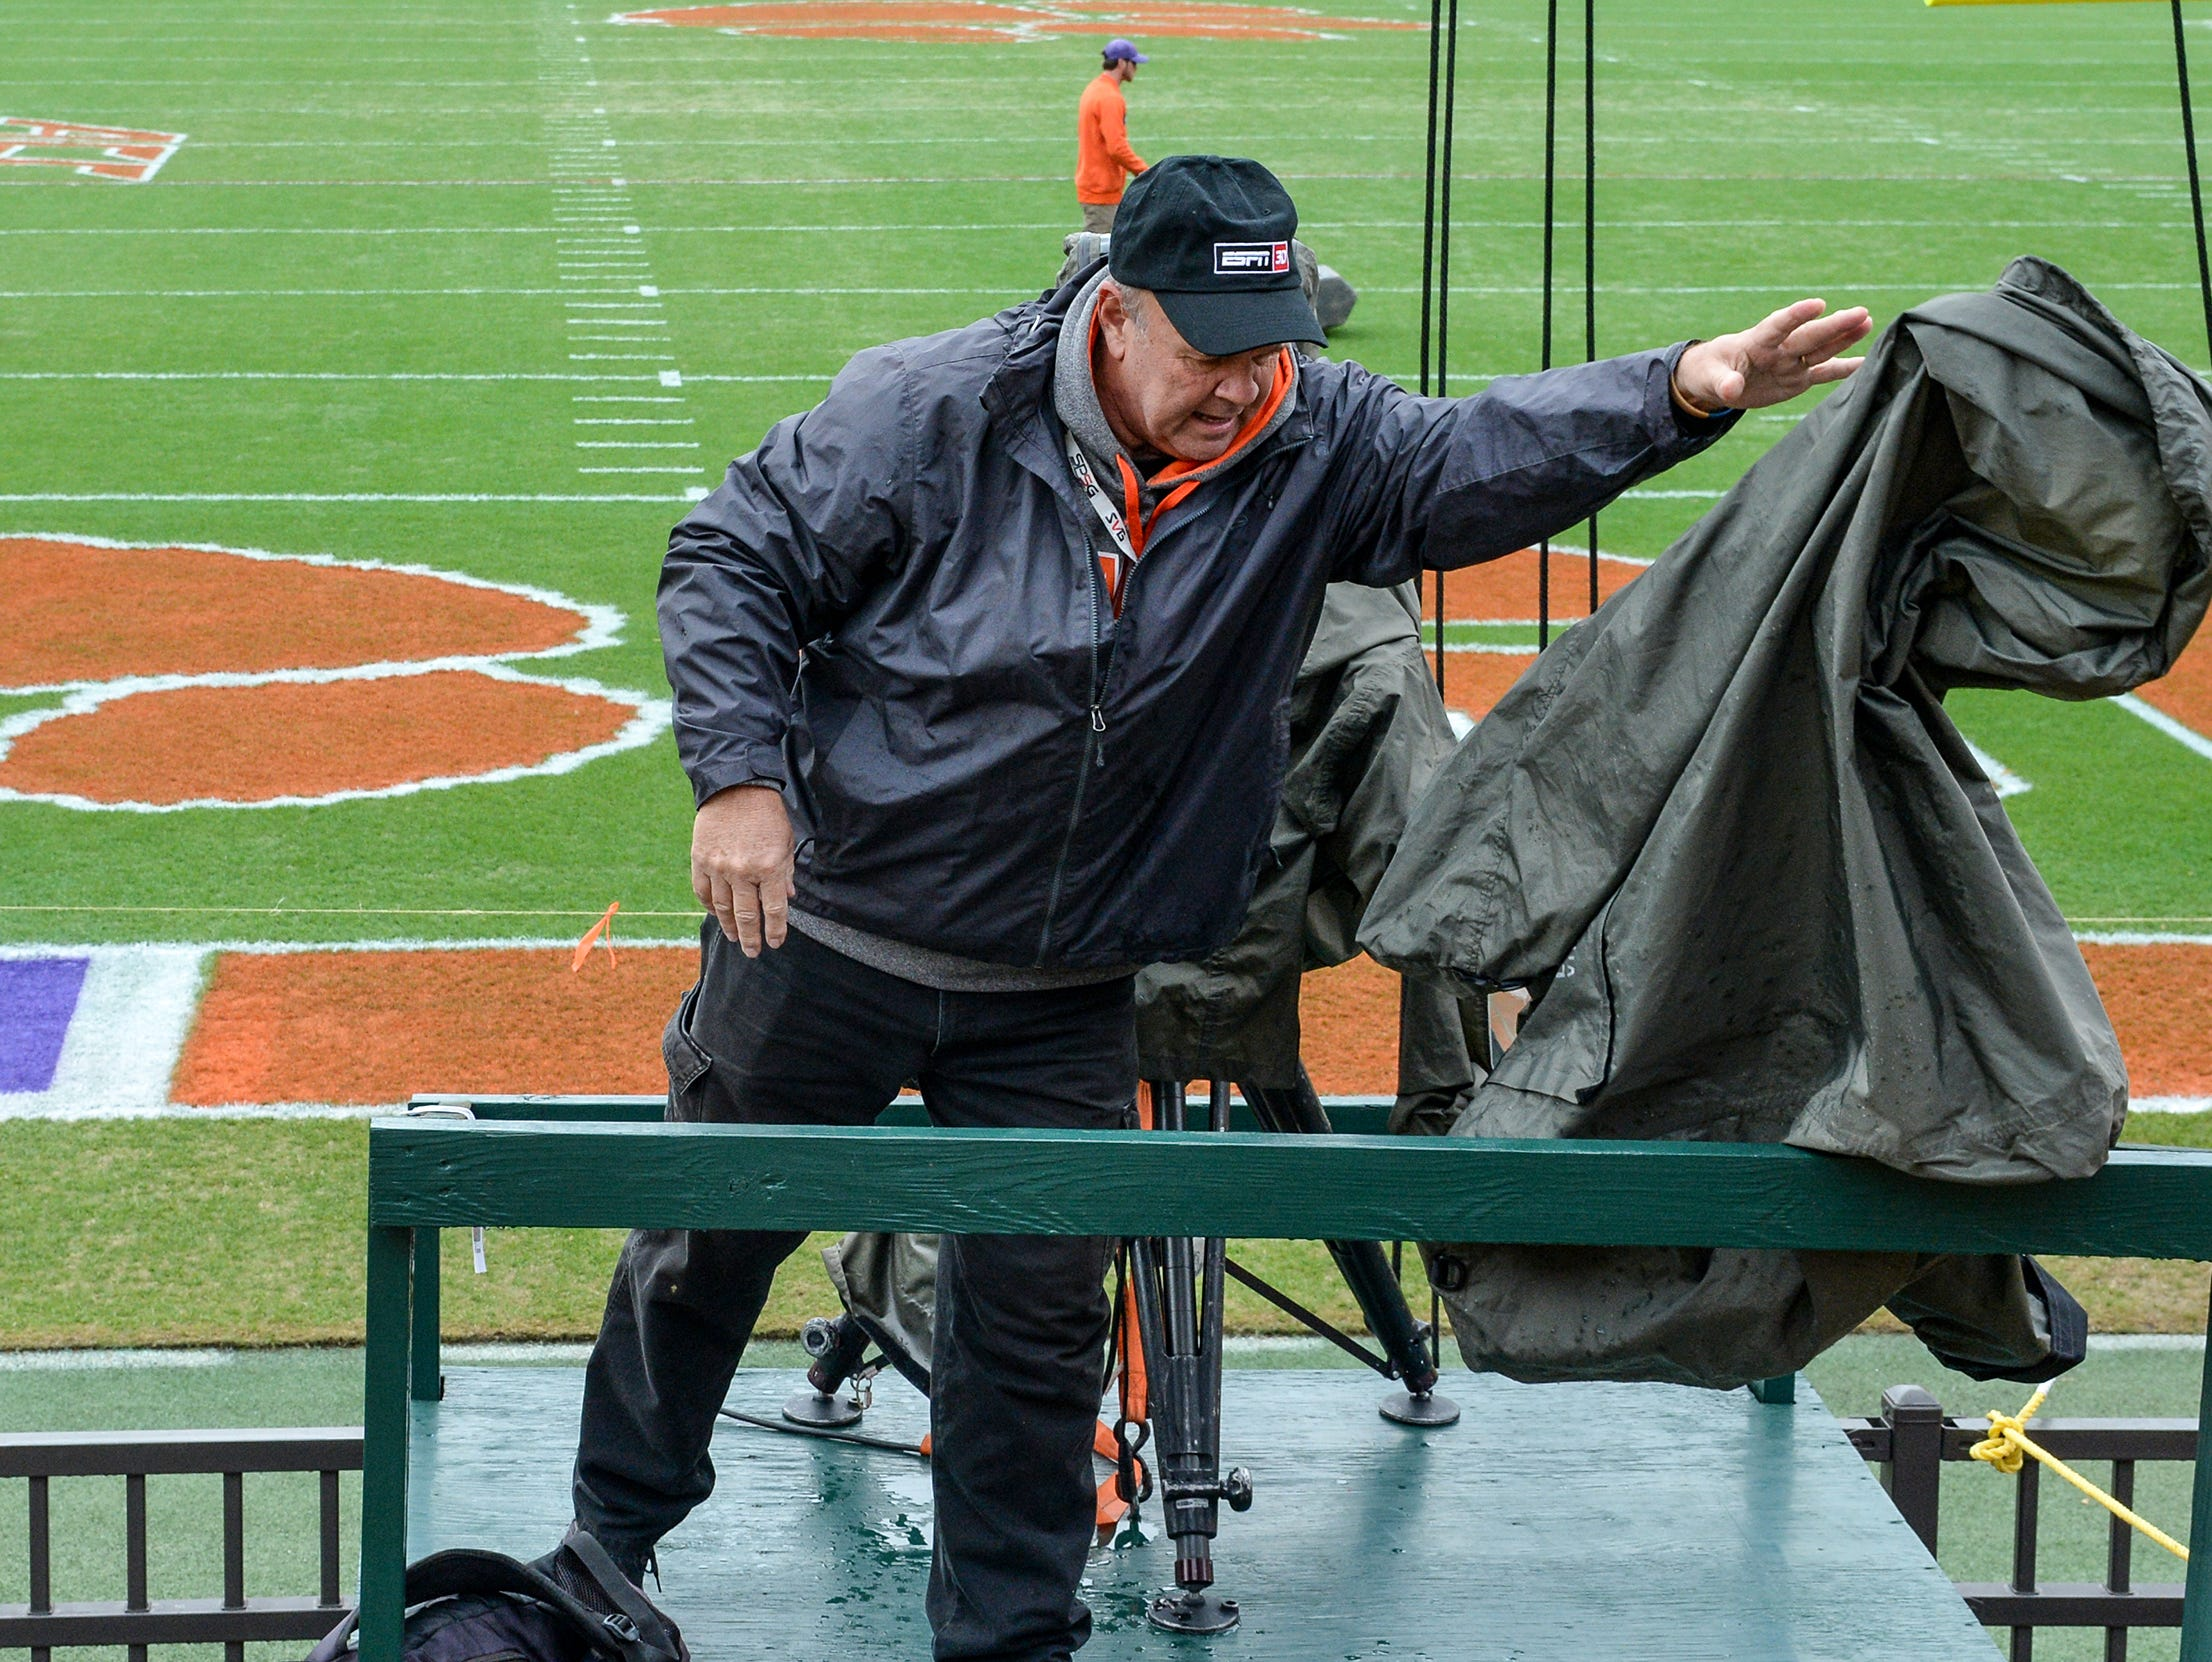 Bob Schuster, an ESPN television cameraman from Anderson County, tosses a rain cover to the side as he gets ready hours before kickoff inside Memorial Stadium, before the South Carolina at Clemson football game, in Clemson on Saturday, November 24, 2018.